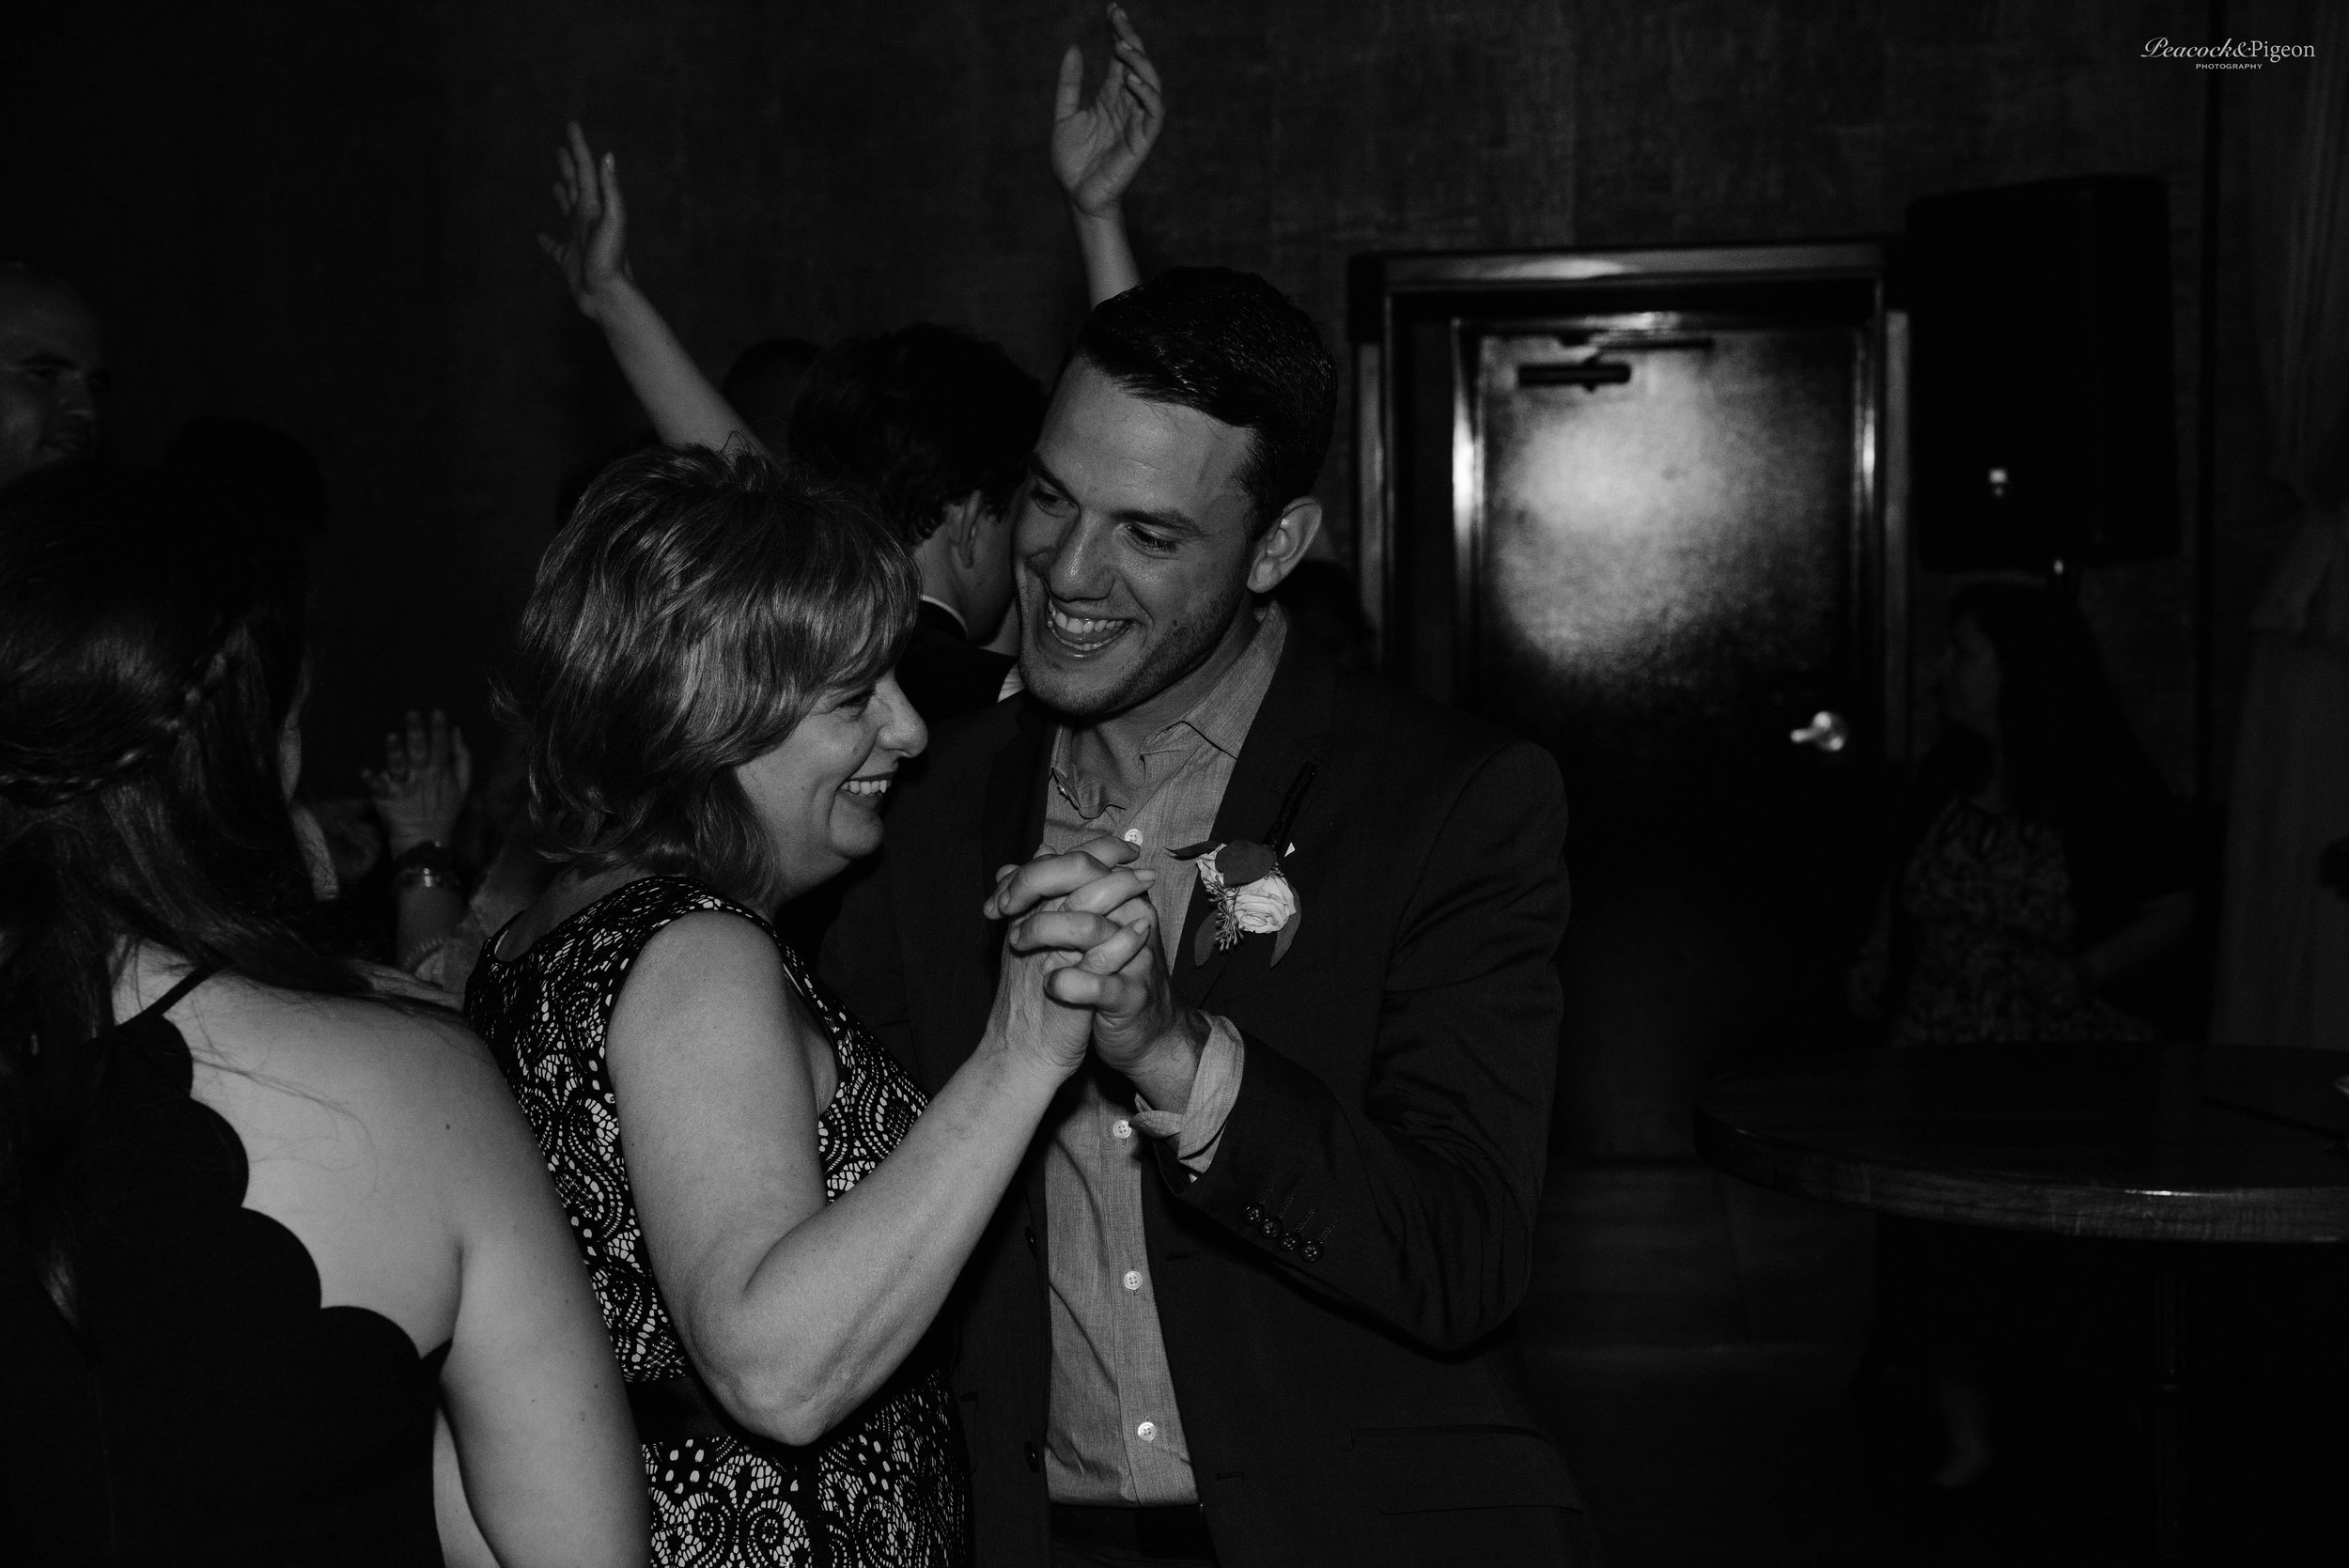 Callum_and_Sara's_Wedding_at_the_Cork_Factory_Hotel_in_Lancaster-Part_Twelve_More_Dancing_Continued_Black_and_White_Watermarked-59.jpg